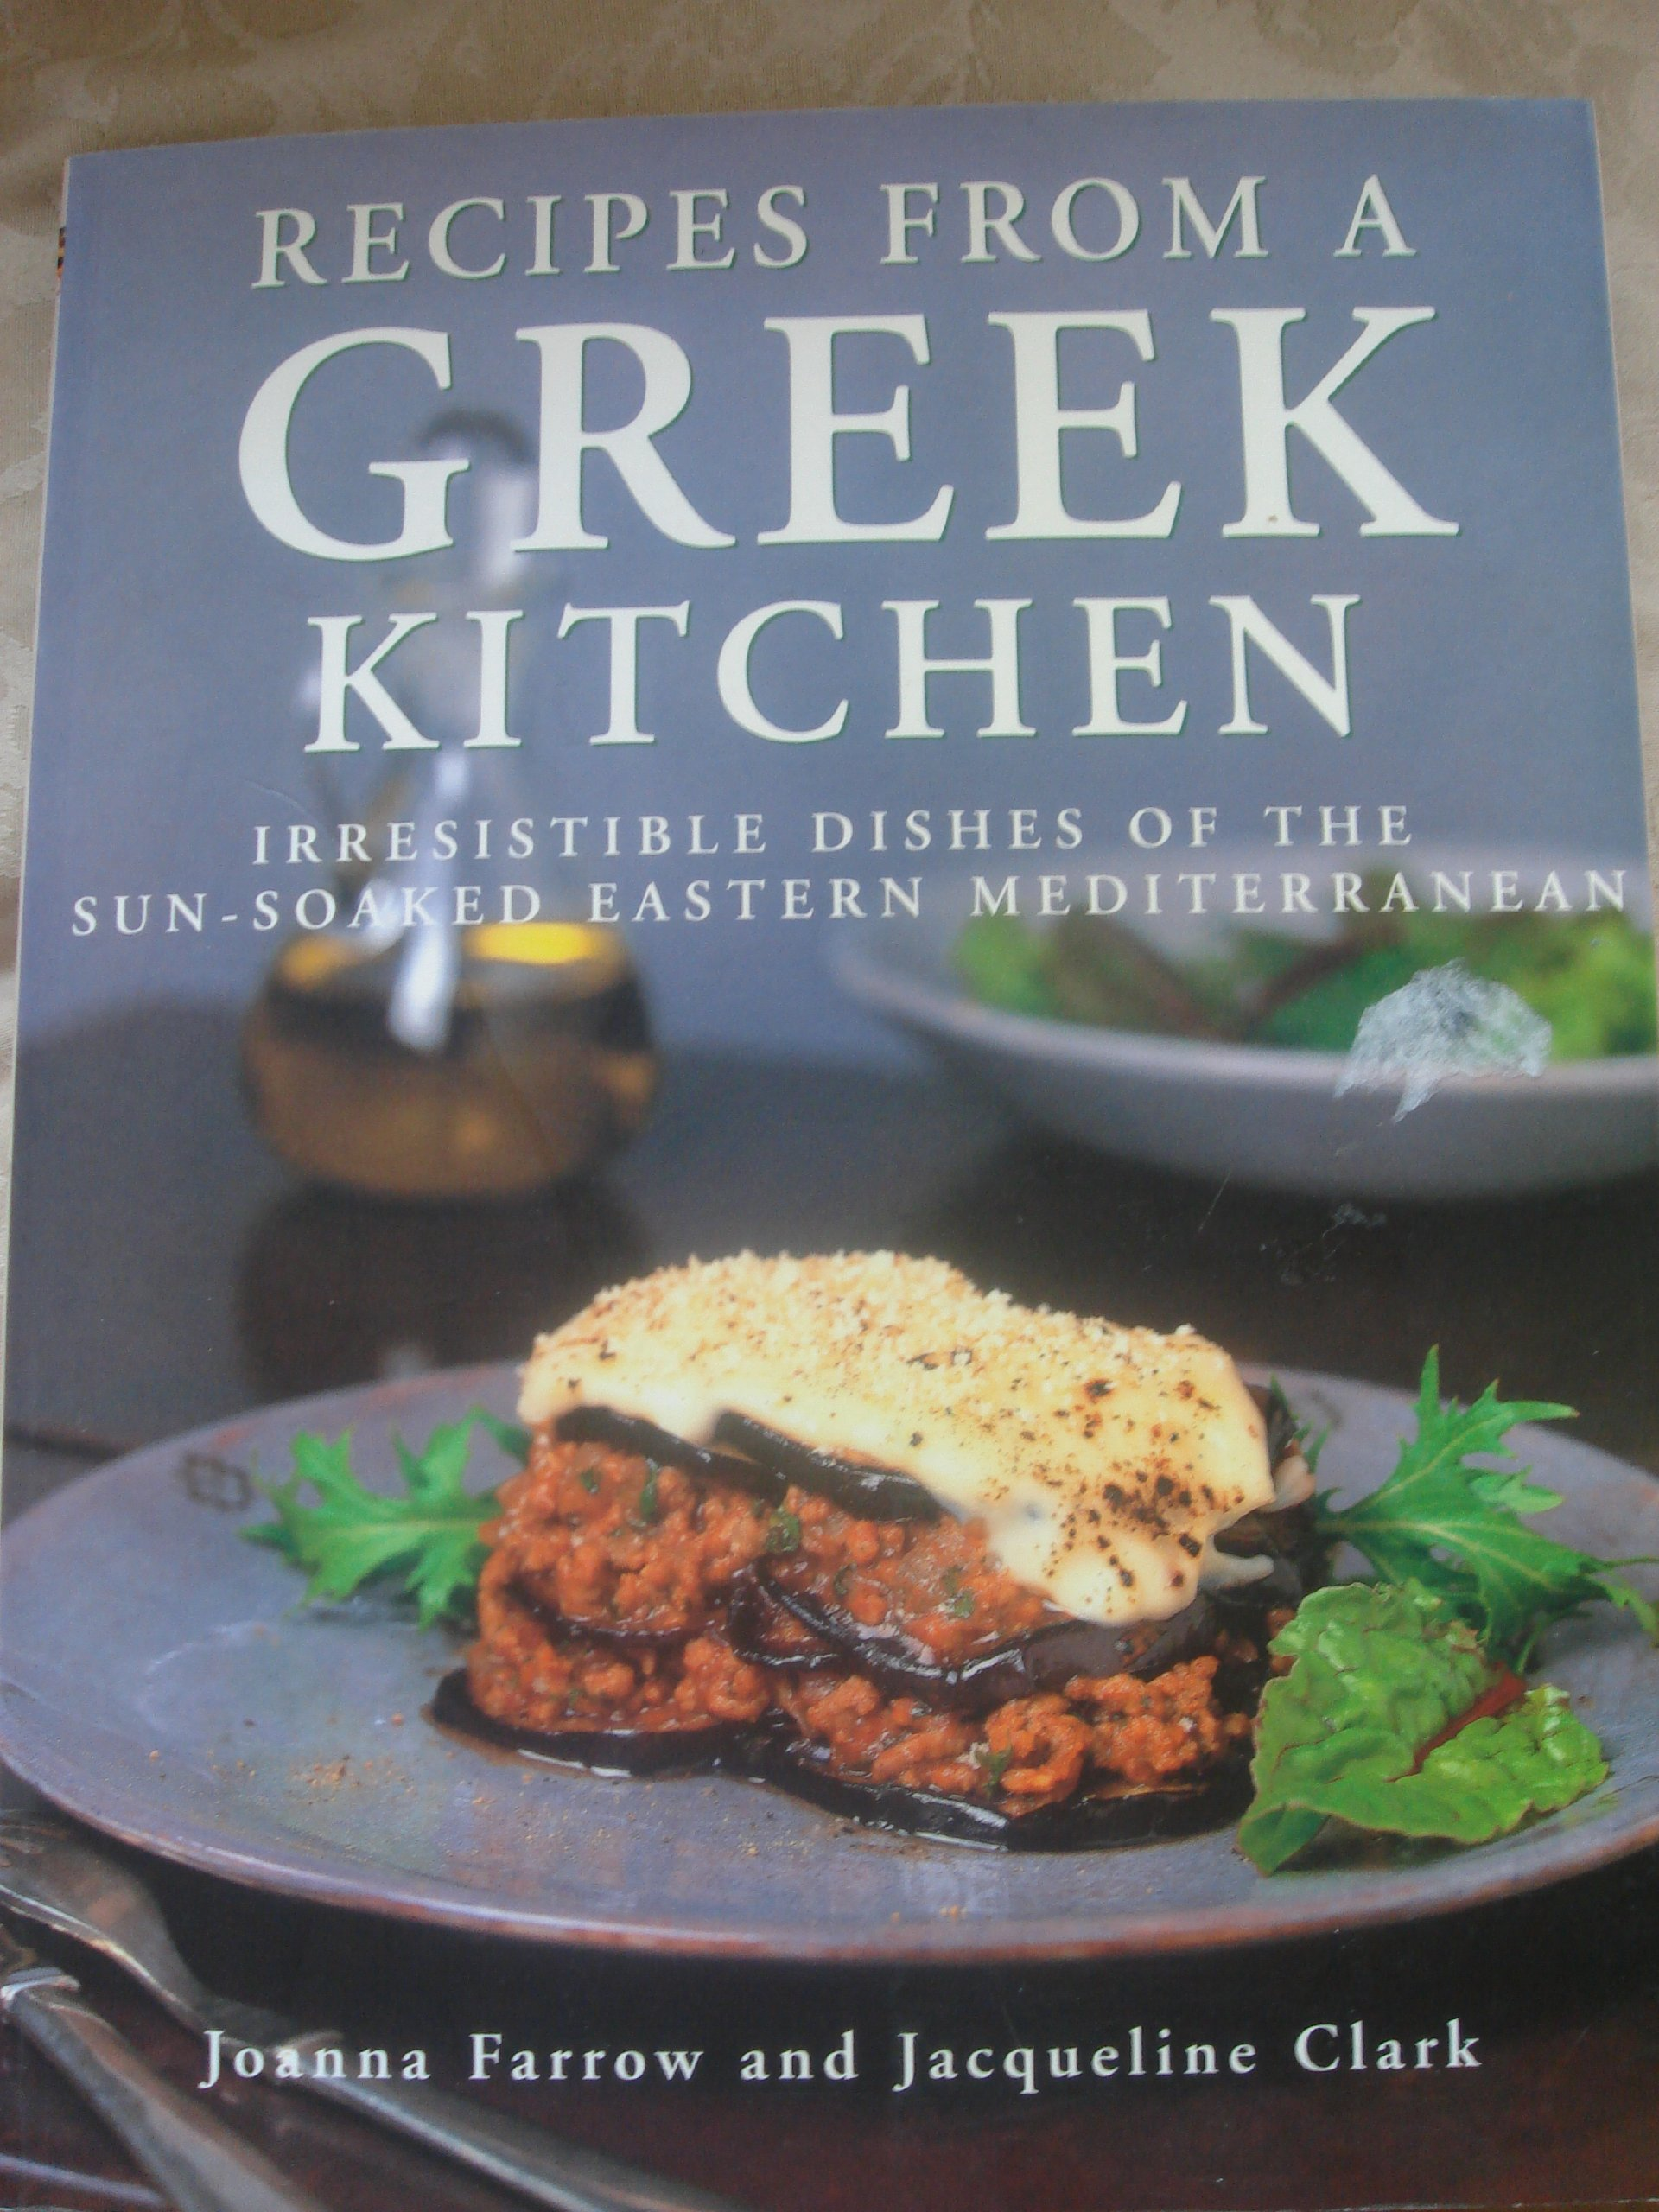 Recipes From A Greek Kitchen Irresistible Dishes Of The Sun Soaked Eastern Mediterranean Farrow Joanna Clark Jacqueline 9781840388817 Amazon Com Books